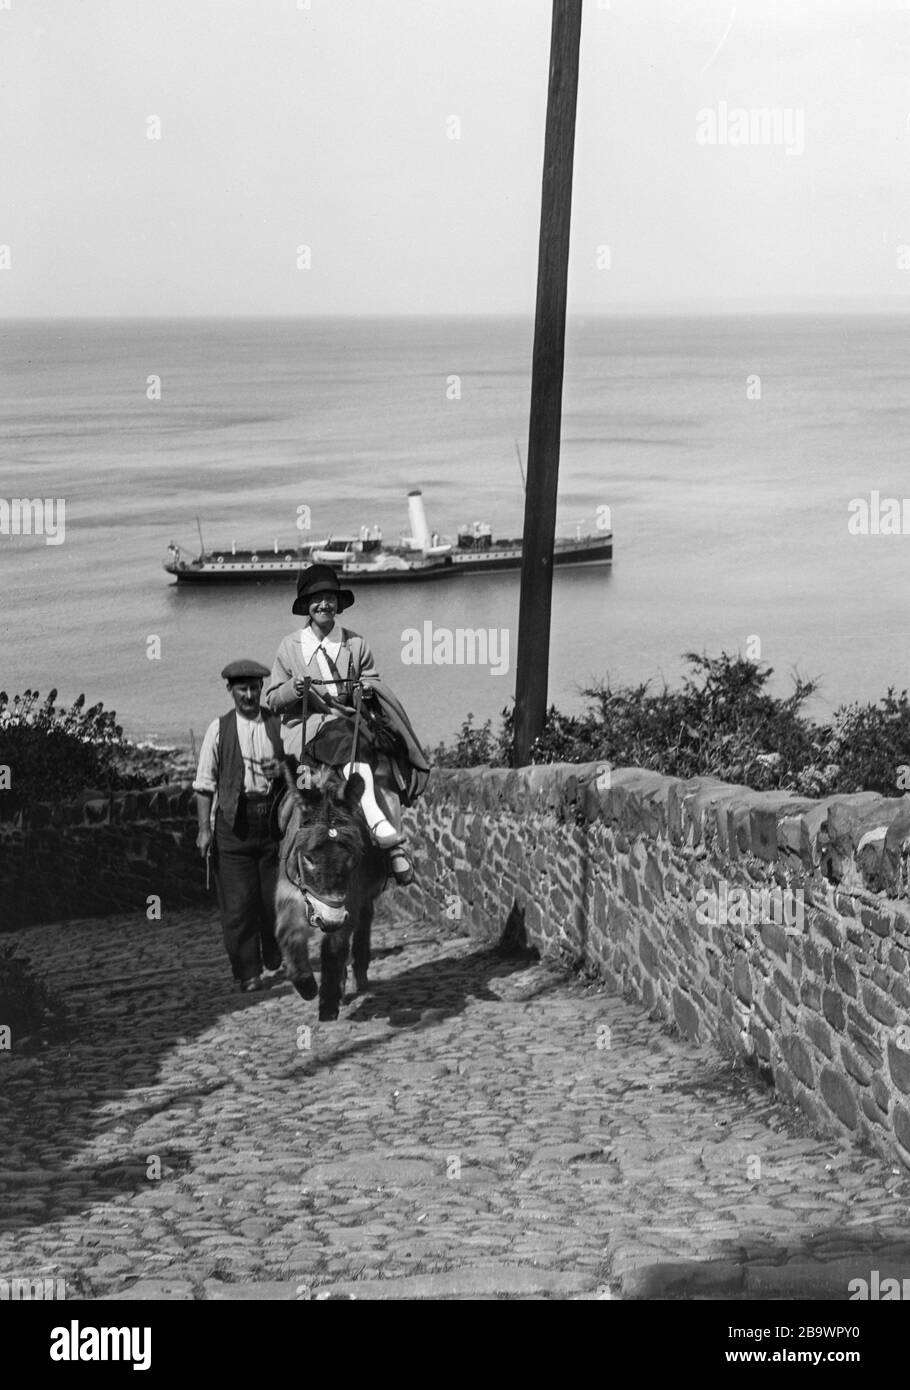 Archive image circa 1925 of a woman riding a donkey up from the beach to Clovelly village, Devon, UK, showing a steamer in the background. Scanned from the original negative. Stock Photo